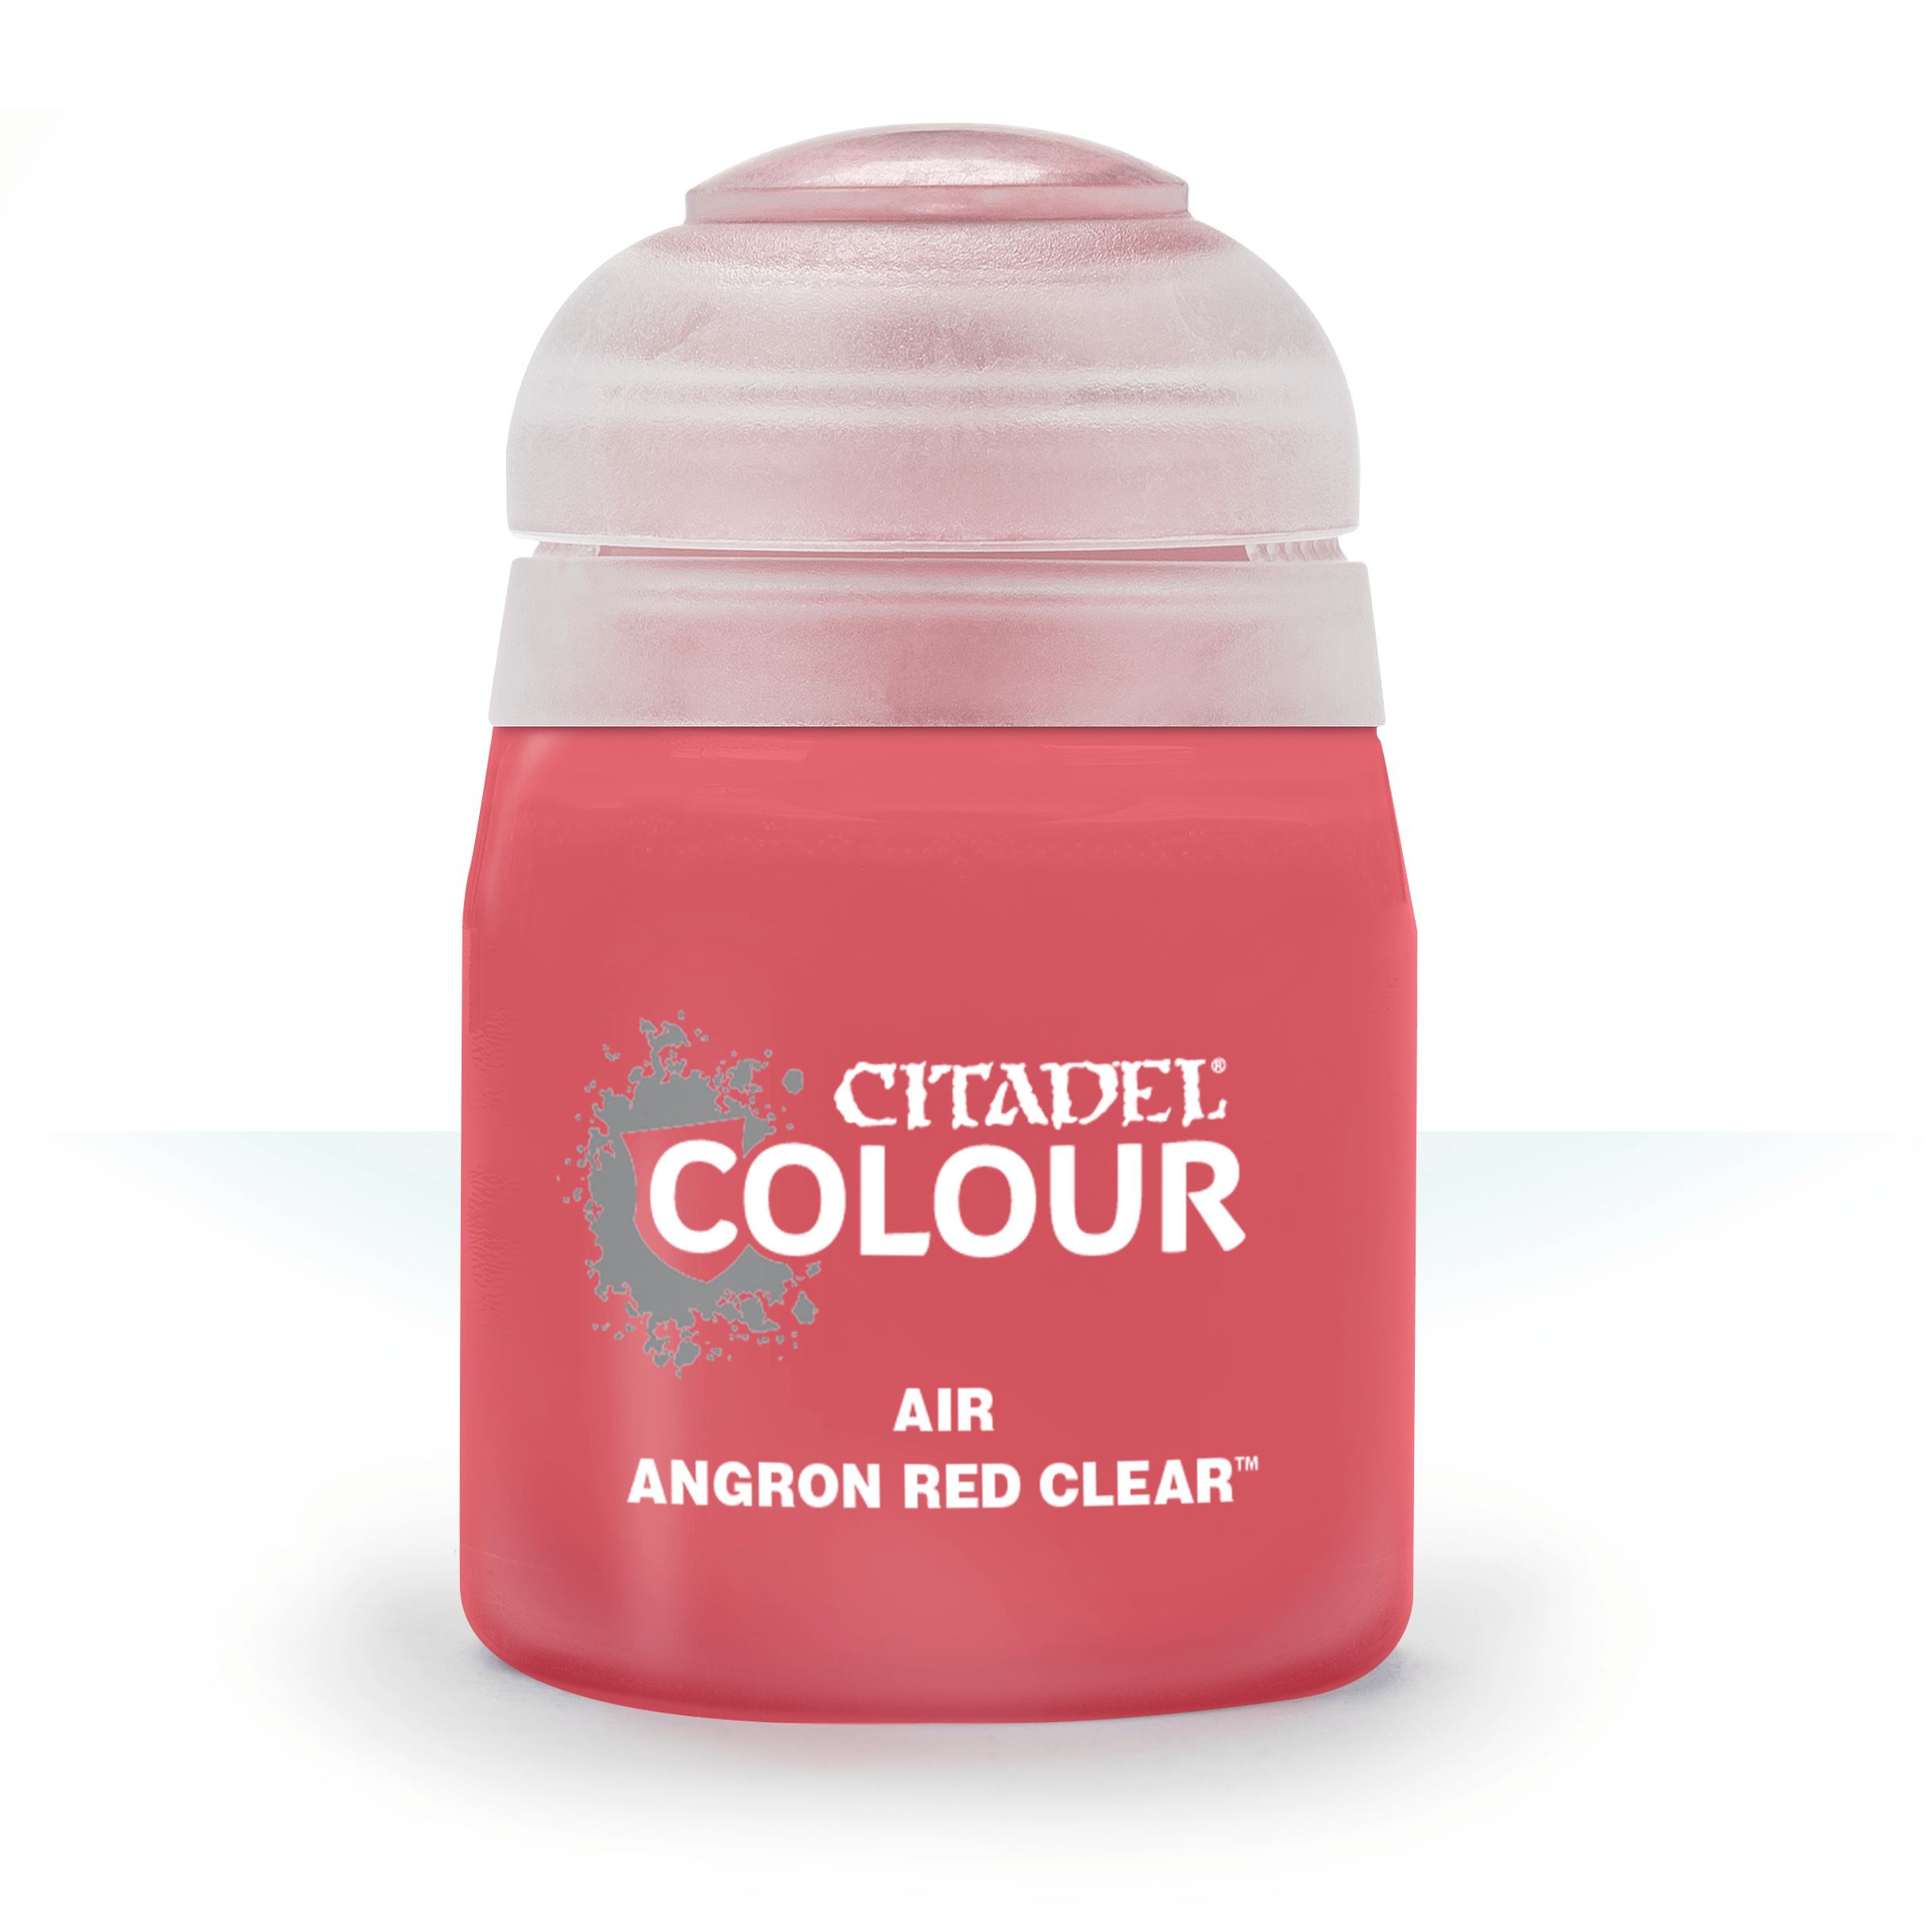 Citadel Airbrush Paints: Angron Red Clear